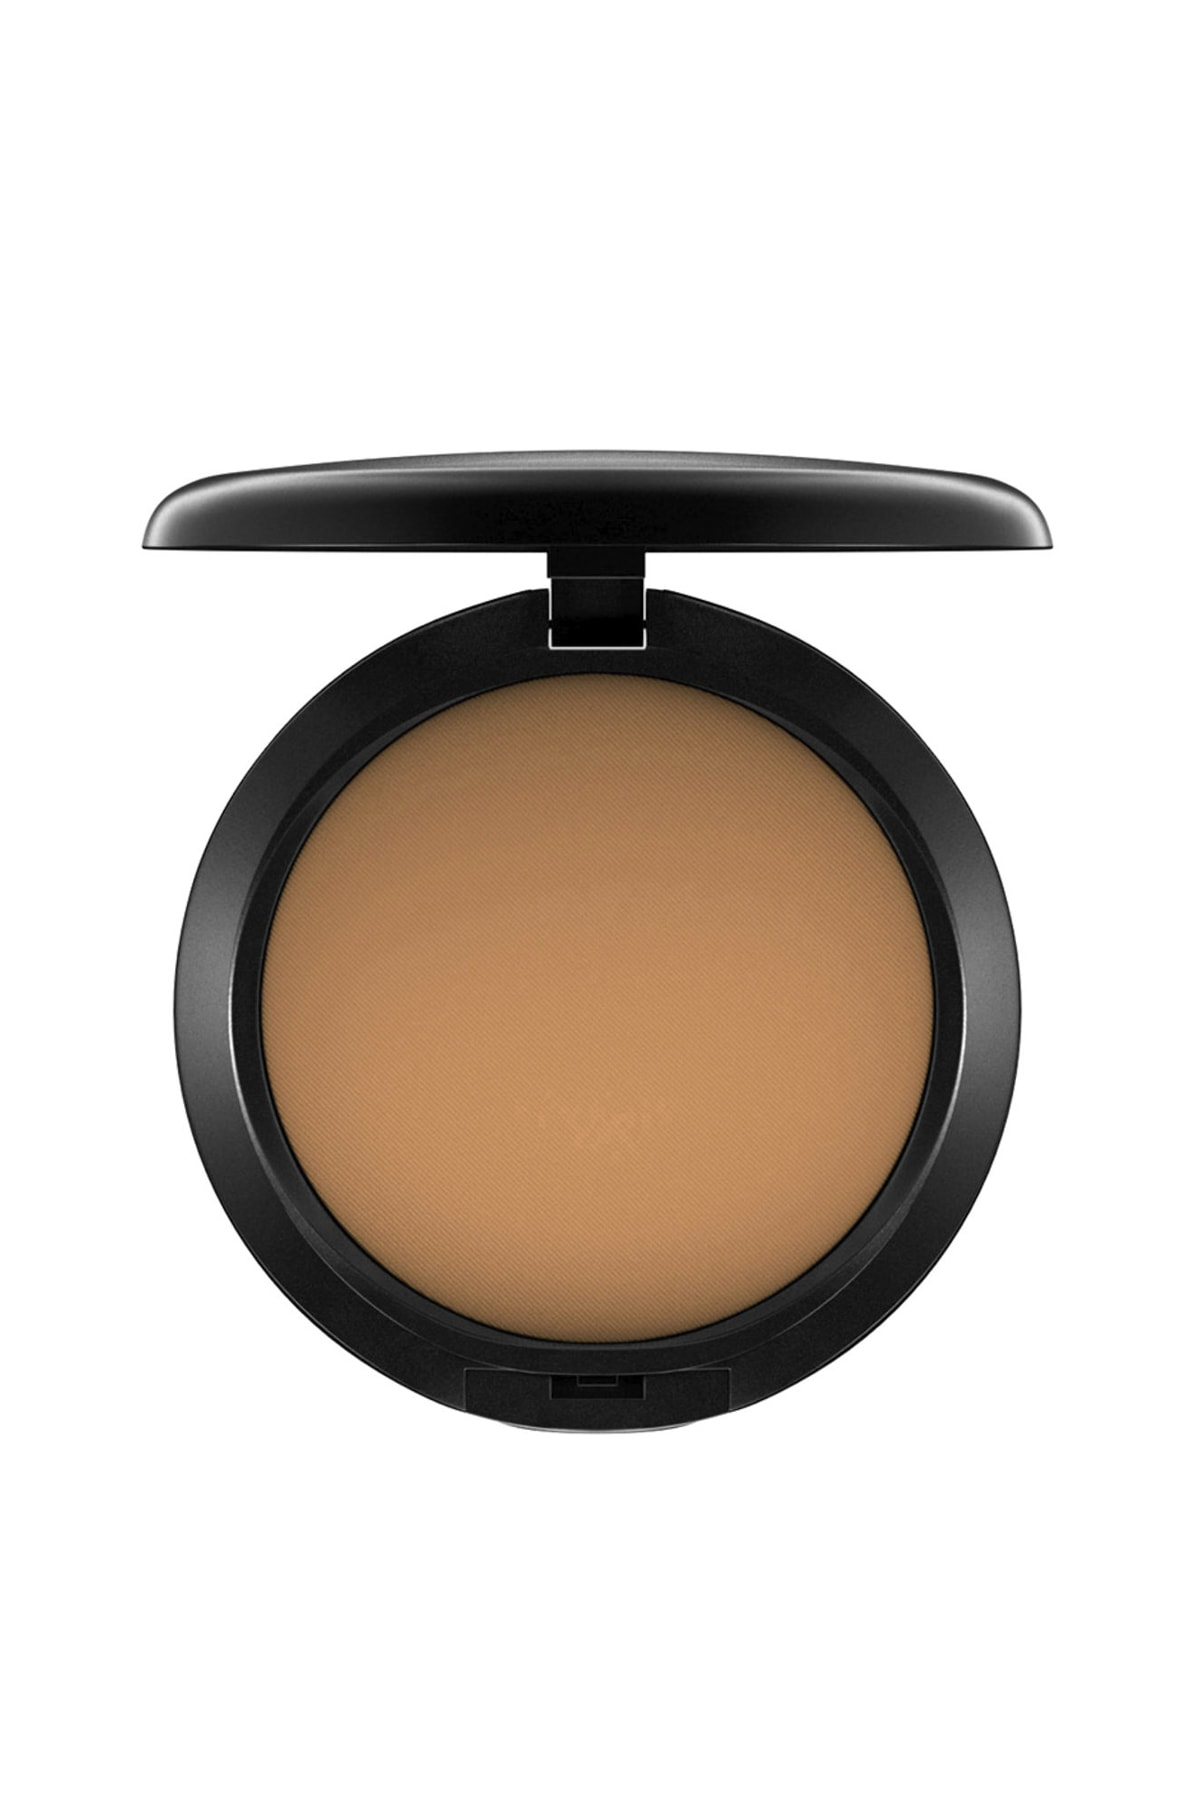 M.A.C Fondöten - Studio Fix Powder Plus Foundation NW5 773602010769 2